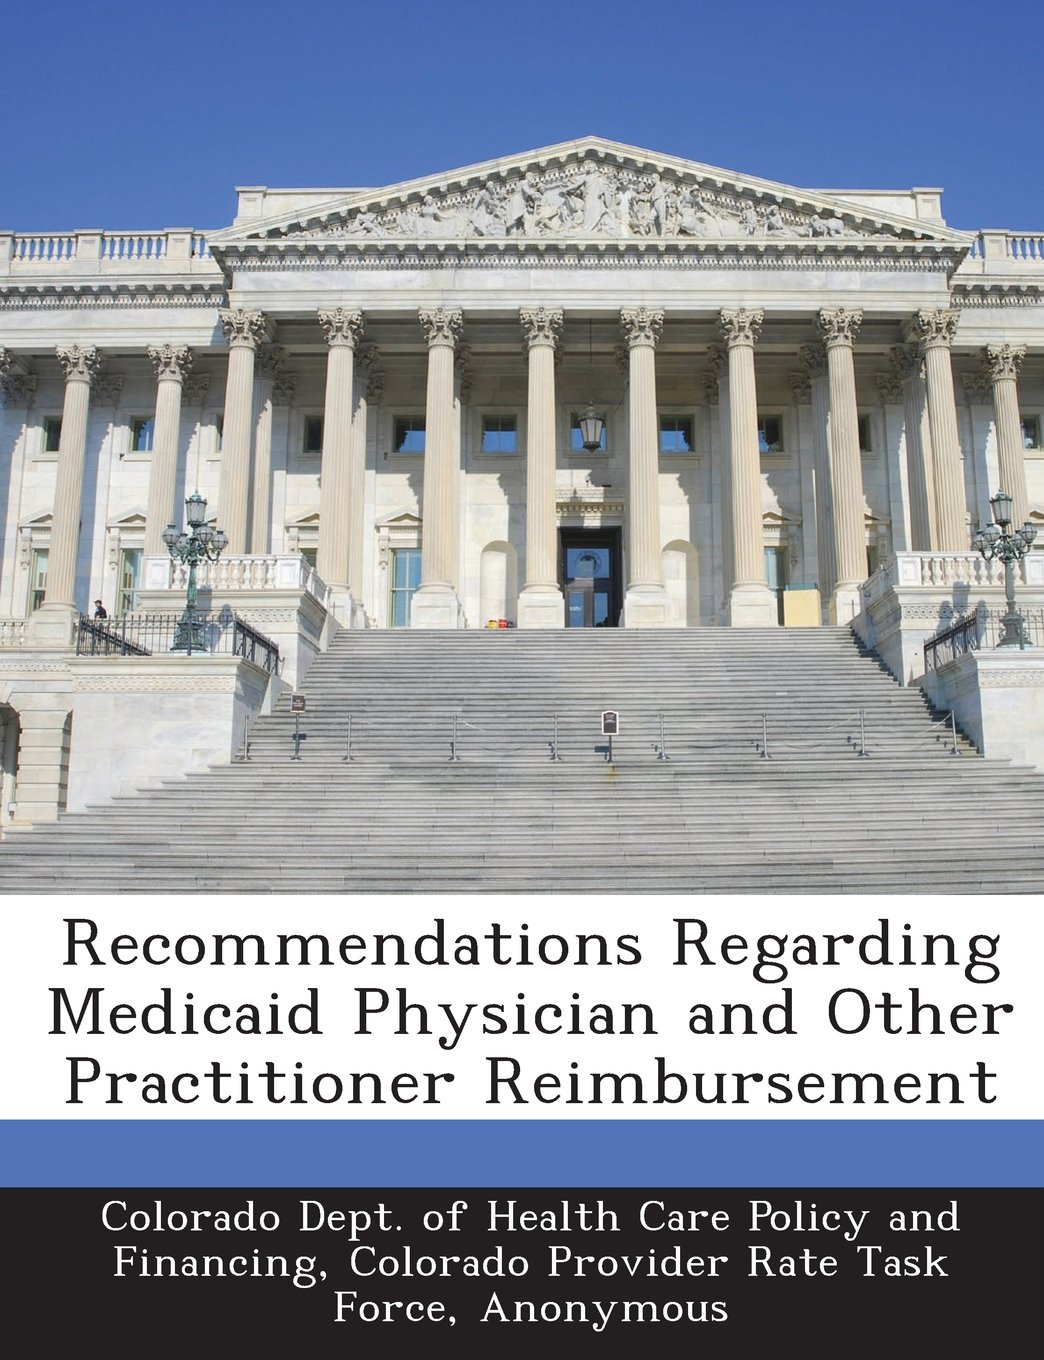 Recommendations Regarding Medicaid Physician and Other